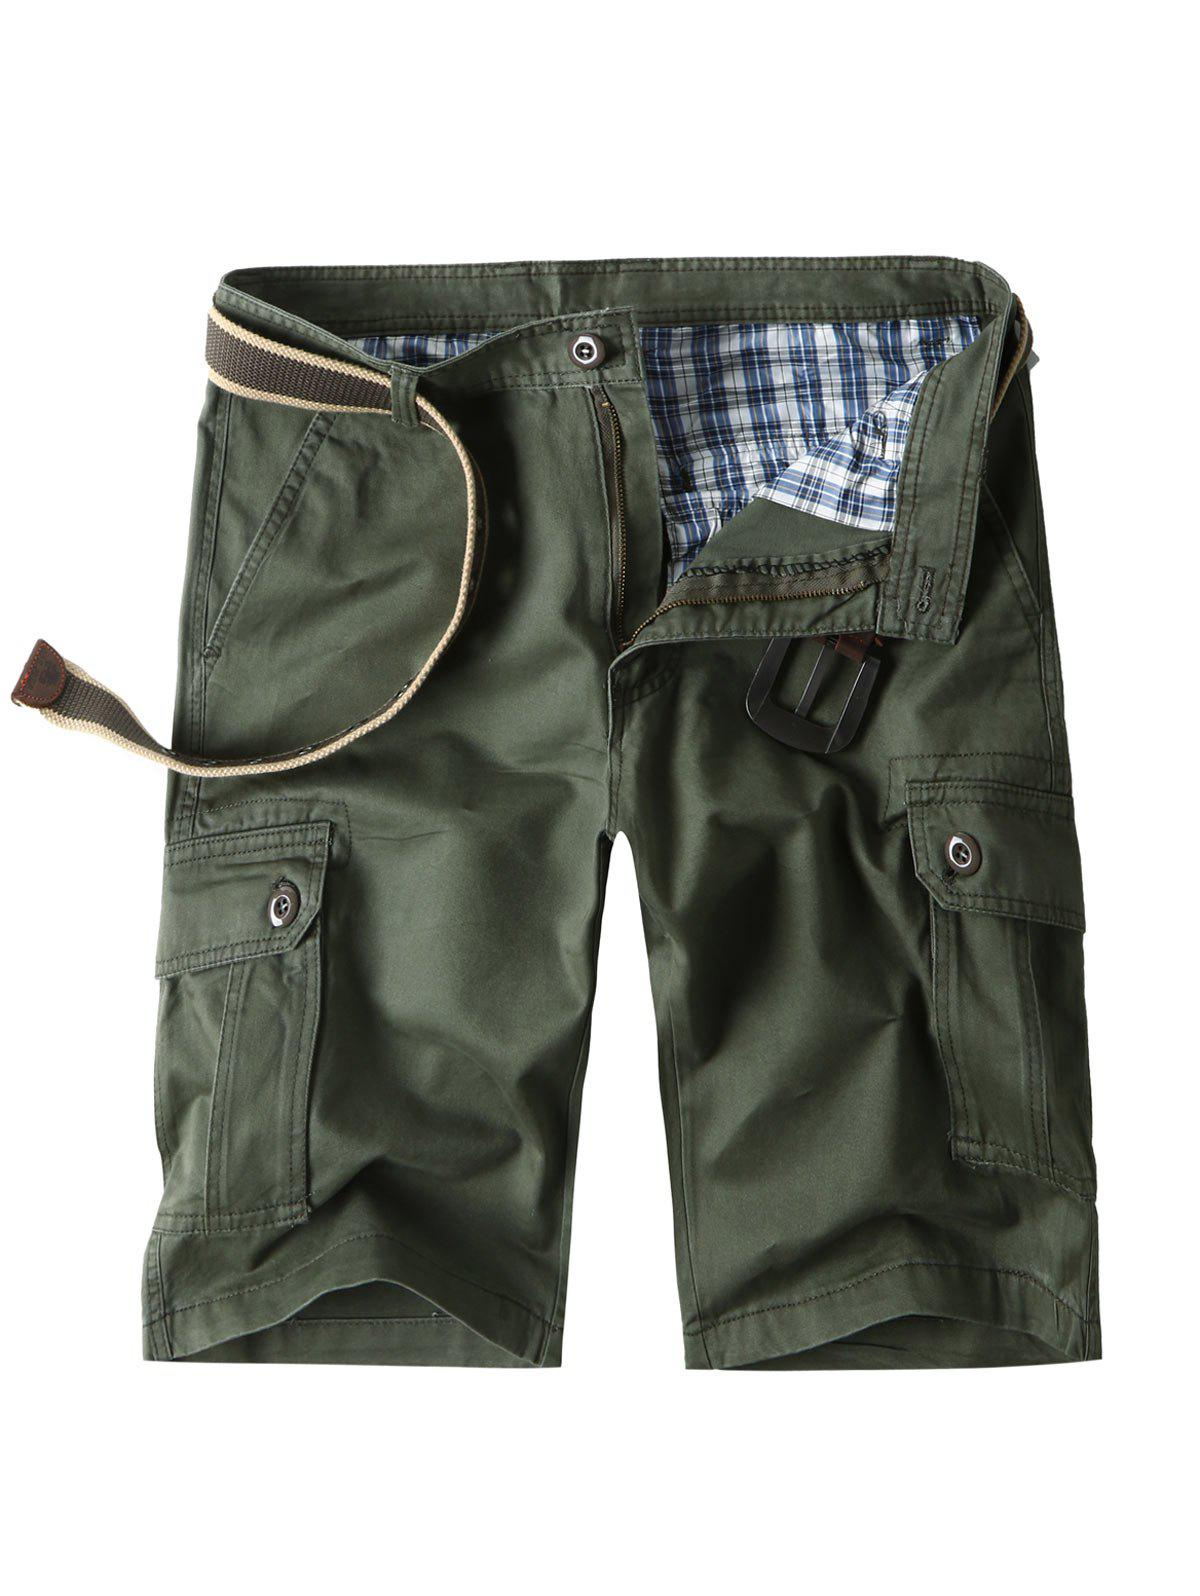 Zipper Fly Bermuda Cargo Shorts with Pockets - ARMY GREEN 32